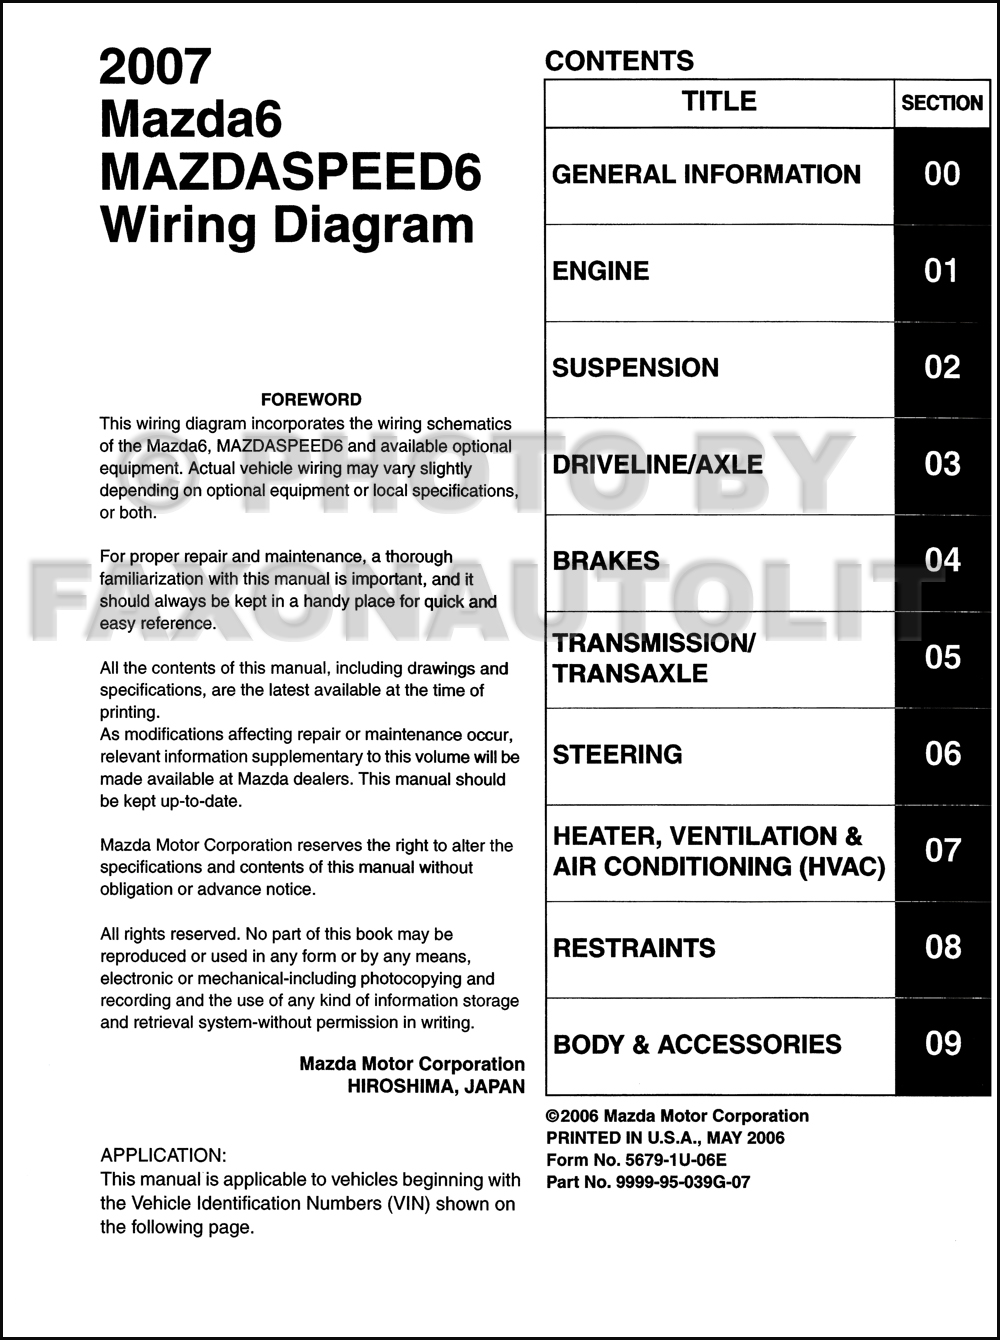 2007 mazda6 and mazdaspeed6 original wiring diagram. Black Bedroom Furniture Sets. Home Design Ideas